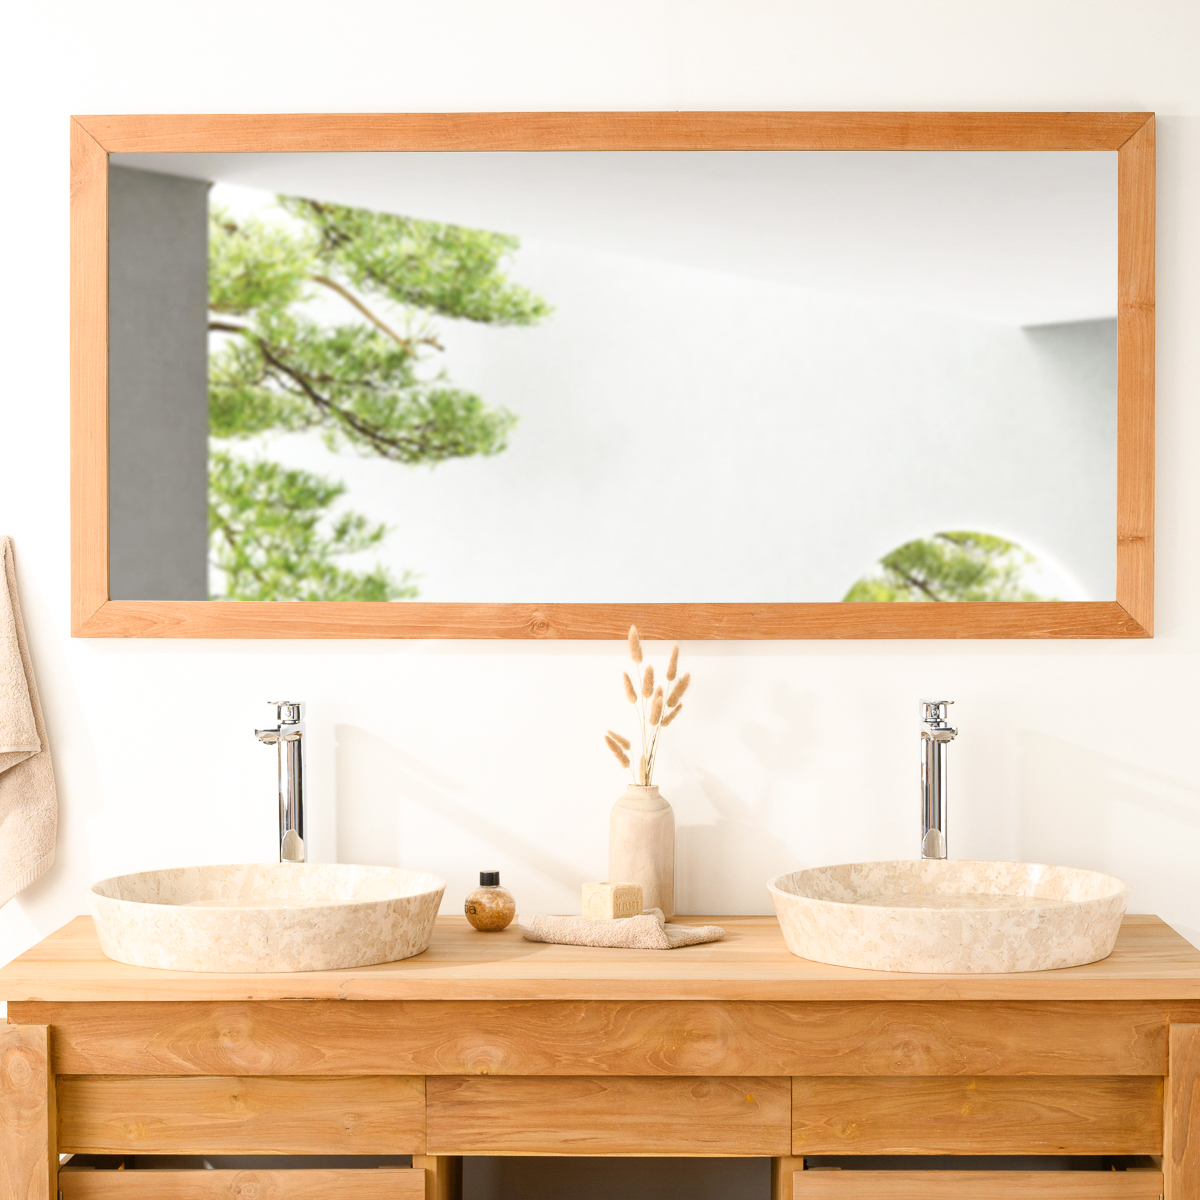 Grand miroir rectangle en teck massif 145x70 for Grand miroir salon